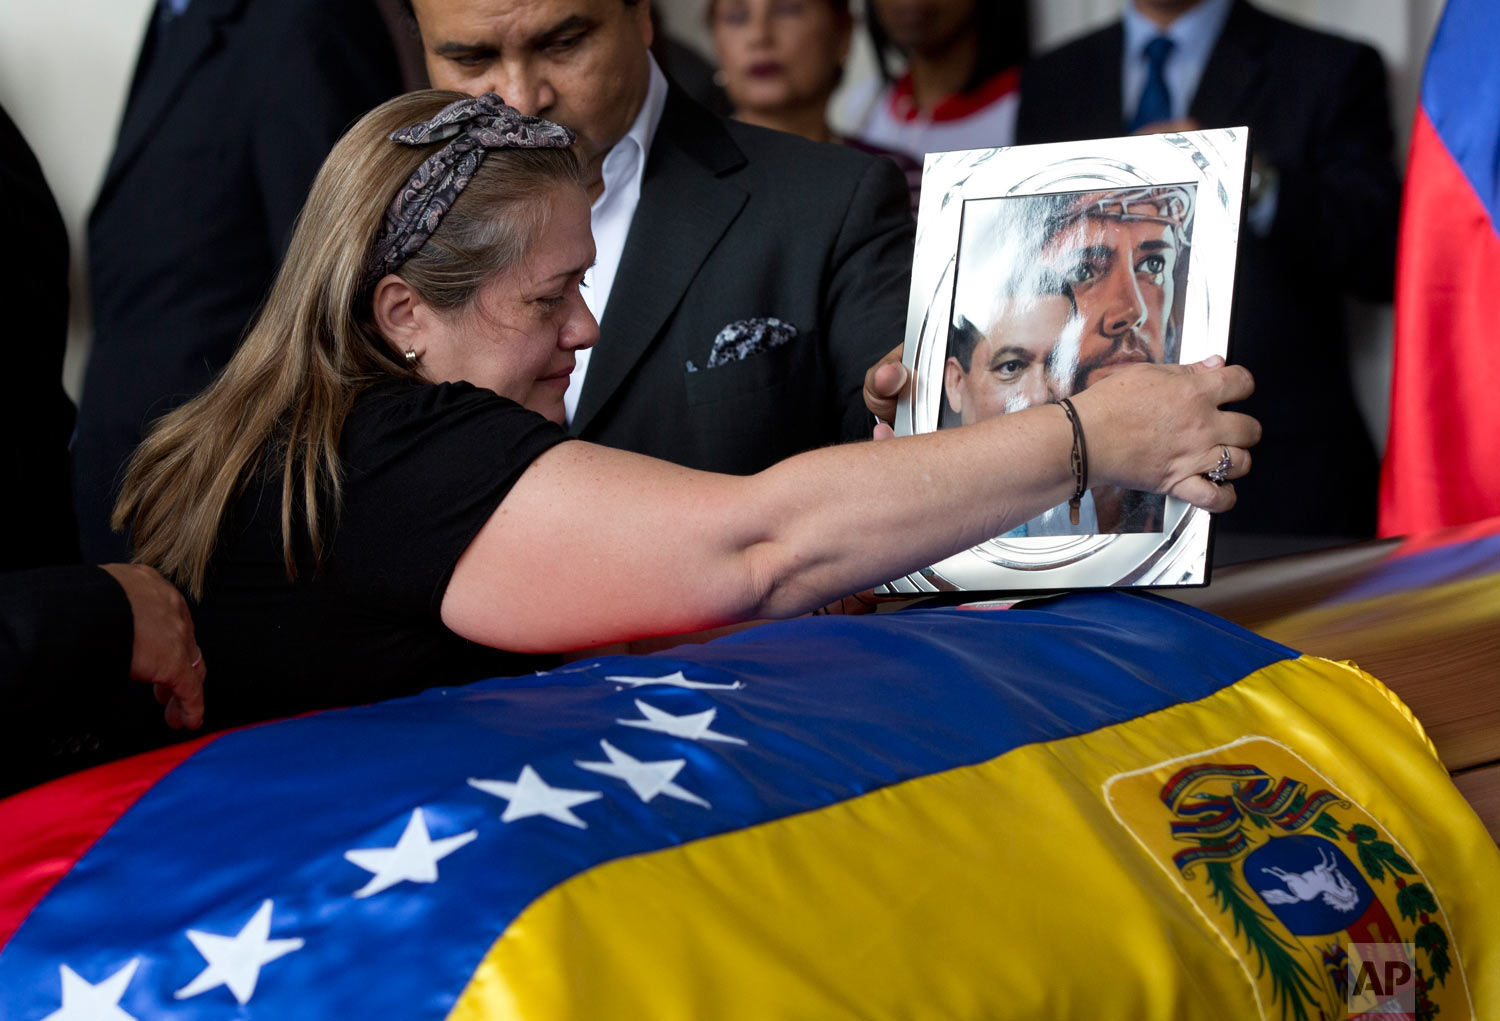 Luz Alban, the sister of opposition activist Fernando Alban places a portrait of her brother shadowed by an image of Jesus Christ, on his flag-draped casket during a ceremony at the National Assembly headquarters, in Caracas, Venezuela, Oct. 9, 2018. Questions and condemnation of Venezuela's leadership poured in following the suspicious death of Alban who authorities say evaded justice by throwing himself from the 10th floor of a police building. (AP Photo/Ariana Cubillos)